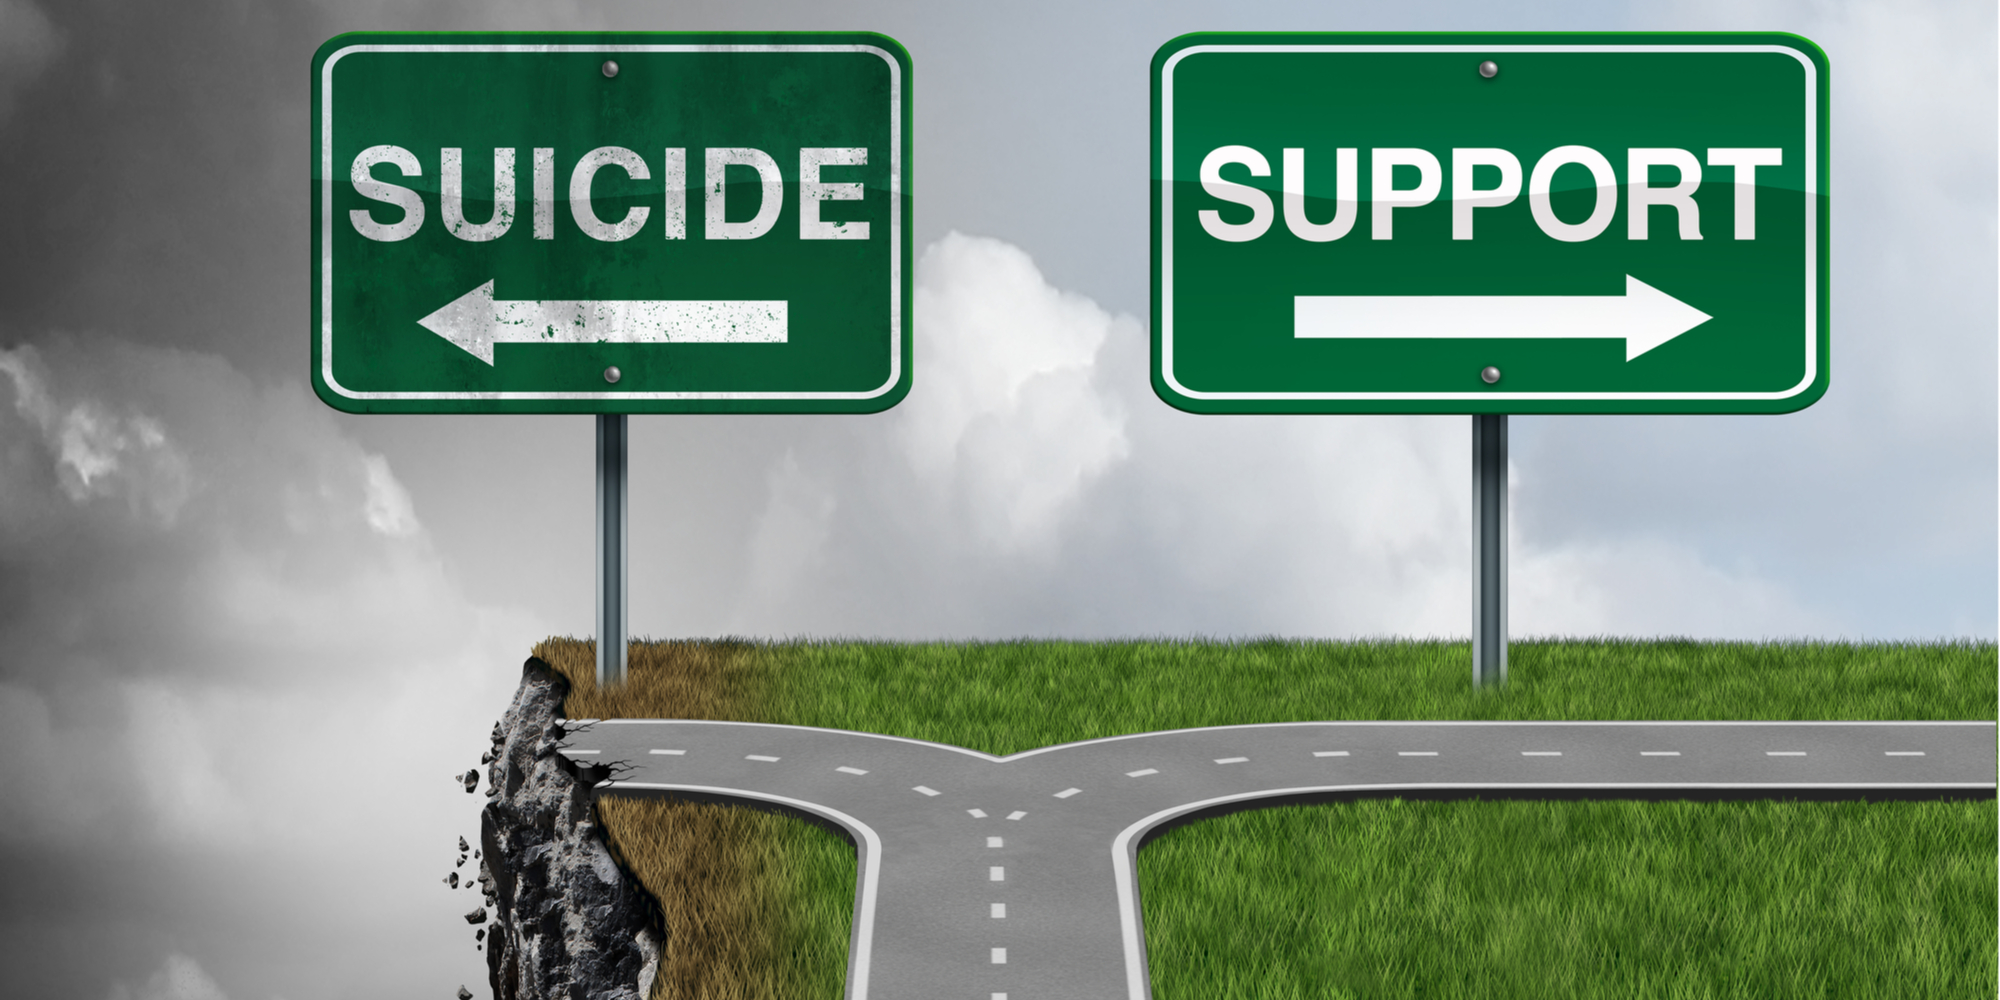 suicide rates during COVID